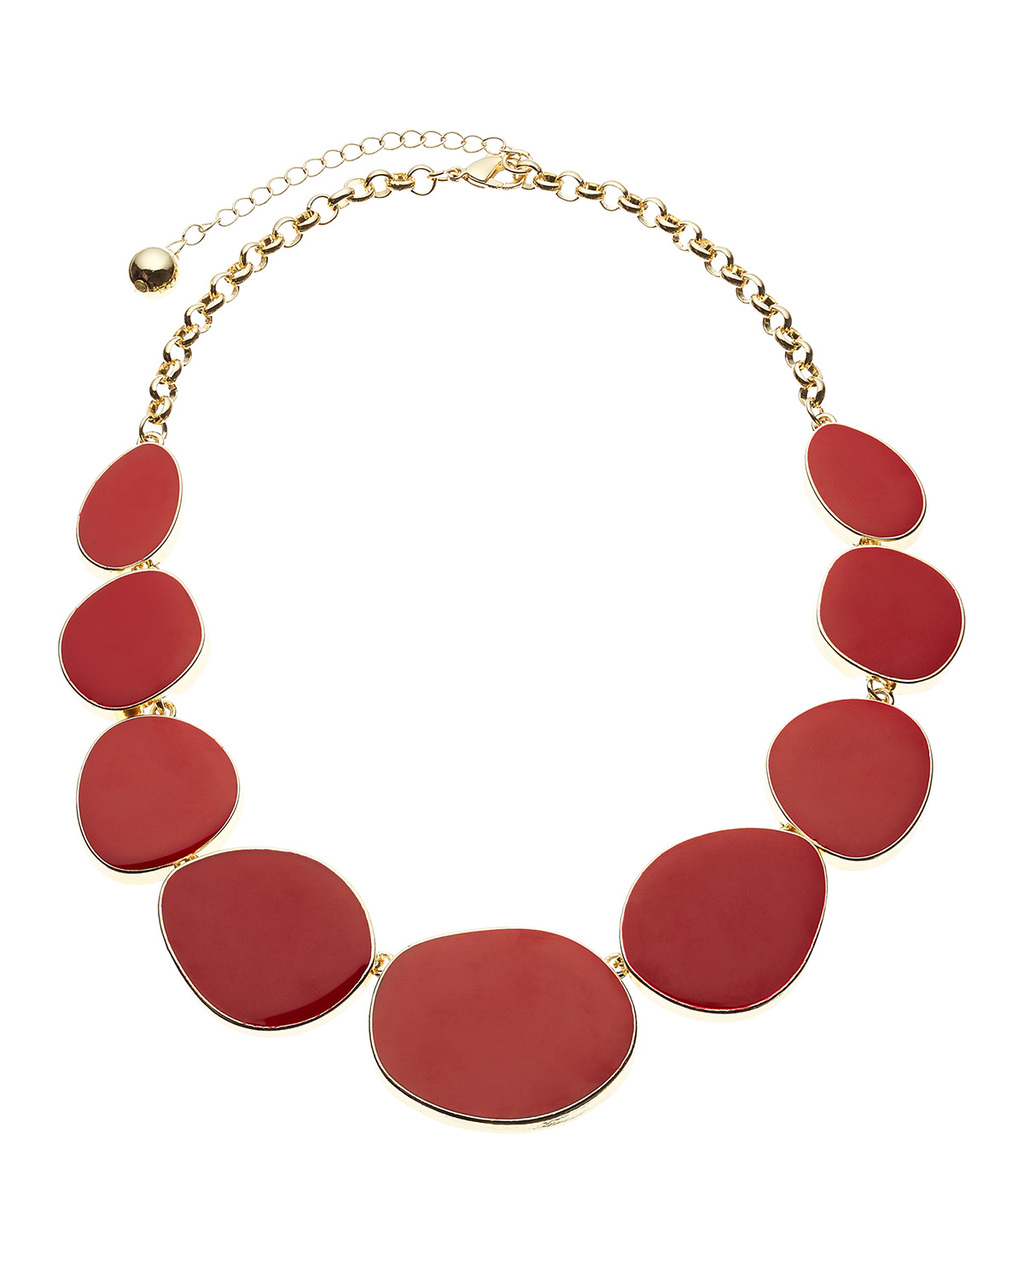 Valentina Necklace - predominant colour: true red; secondary colour: gold; occasions: evening; style: choker/collar/torque; length: short; size: standard; material: plastic/rubber; finish: plain; embellishment: beading; season: s/s 2016